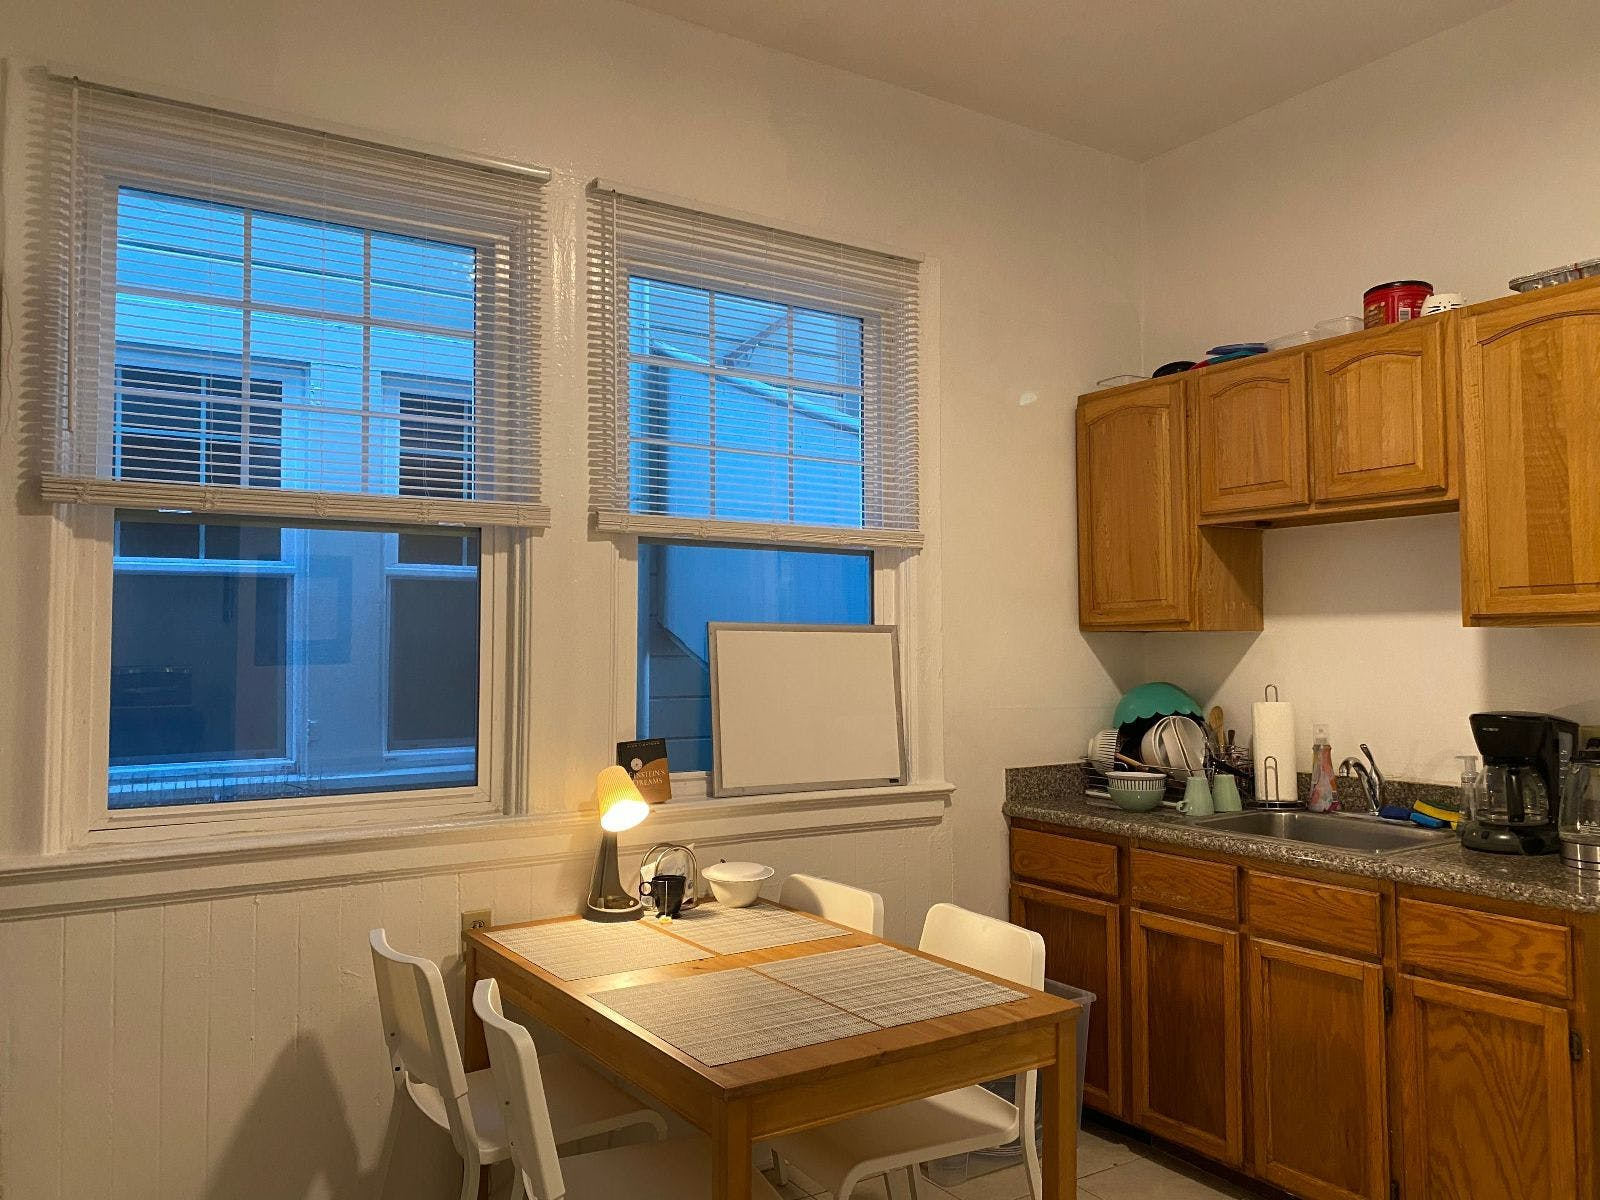 12 Residents | 4th Ave. - Inner Richmond - 7 min from the Golden Gate Park | Spacious House Incl. Coworking